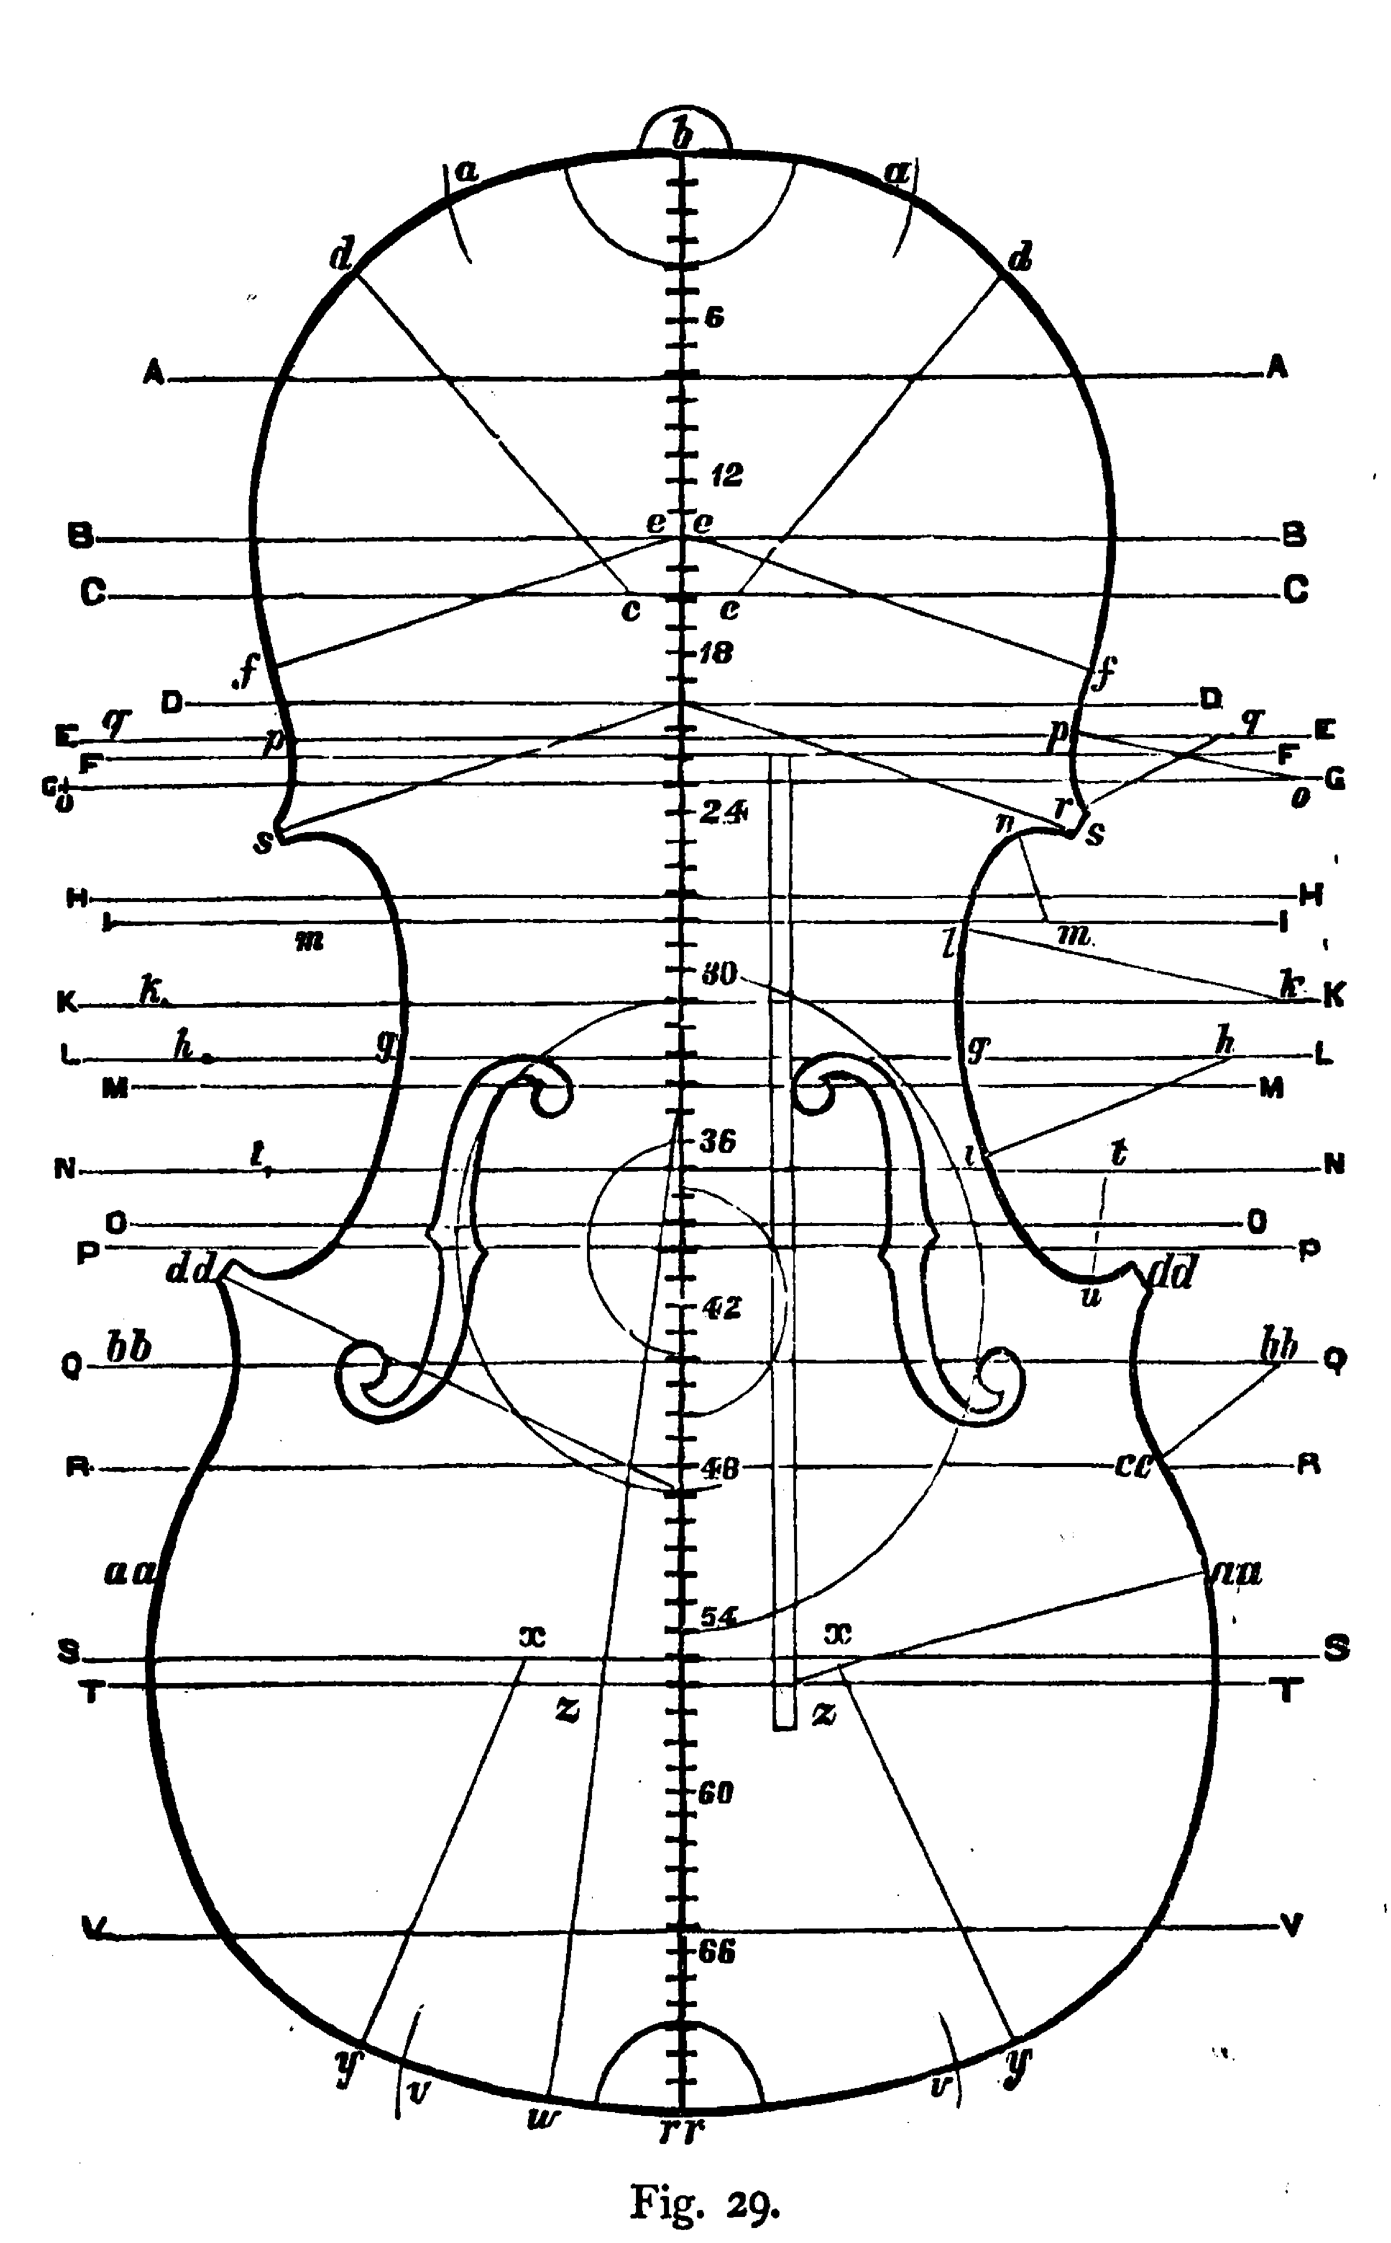 7298aca4dc299769aabcb1a303f959ed Homemade Cello Plans on homemade shop project, homemade electric cello, amazing woodworking plans, build a workbench yourself plans, cello stand plans, homemade instrument cello,